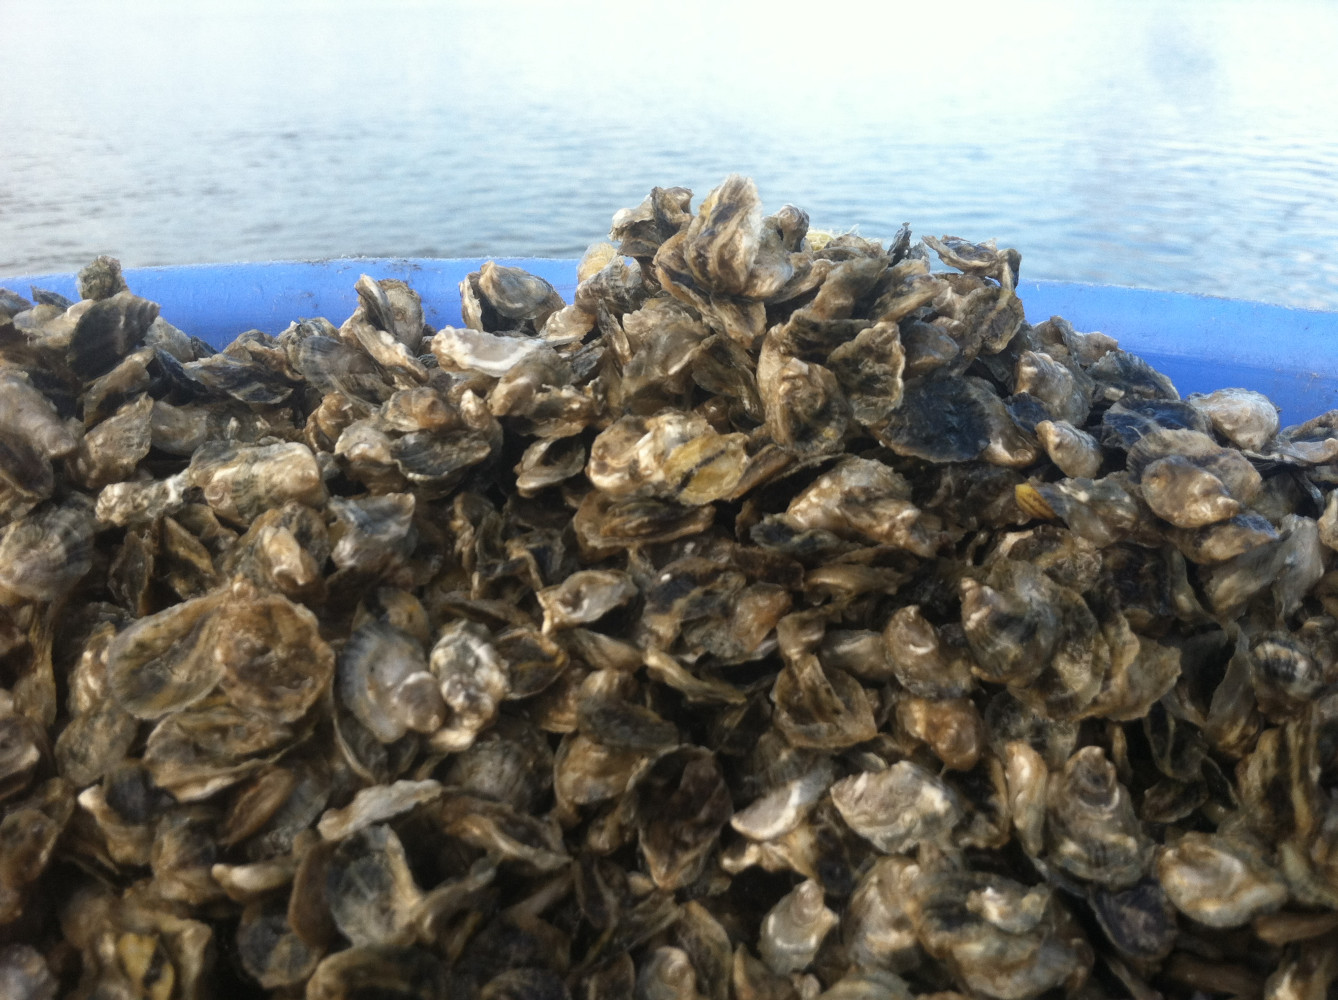 10 YEARS OF OYSTER PRODUCTION FOR  UNIVERSITY / COMMUNITY BASED OYSTER GARDENING RESTORATION